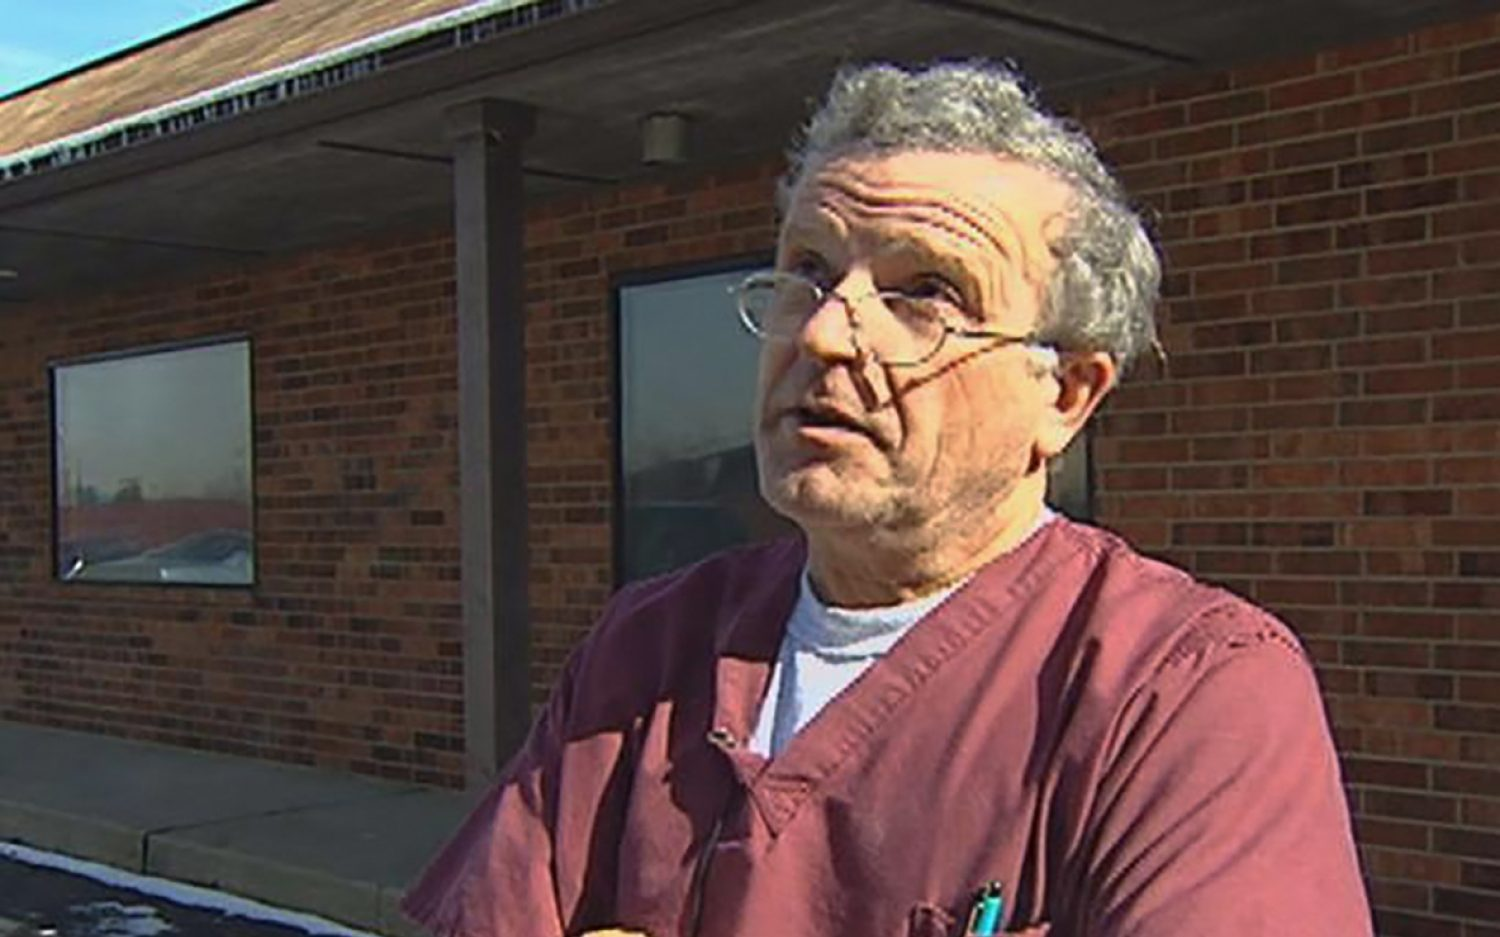 Abortionist kept remains of unborn babies at home